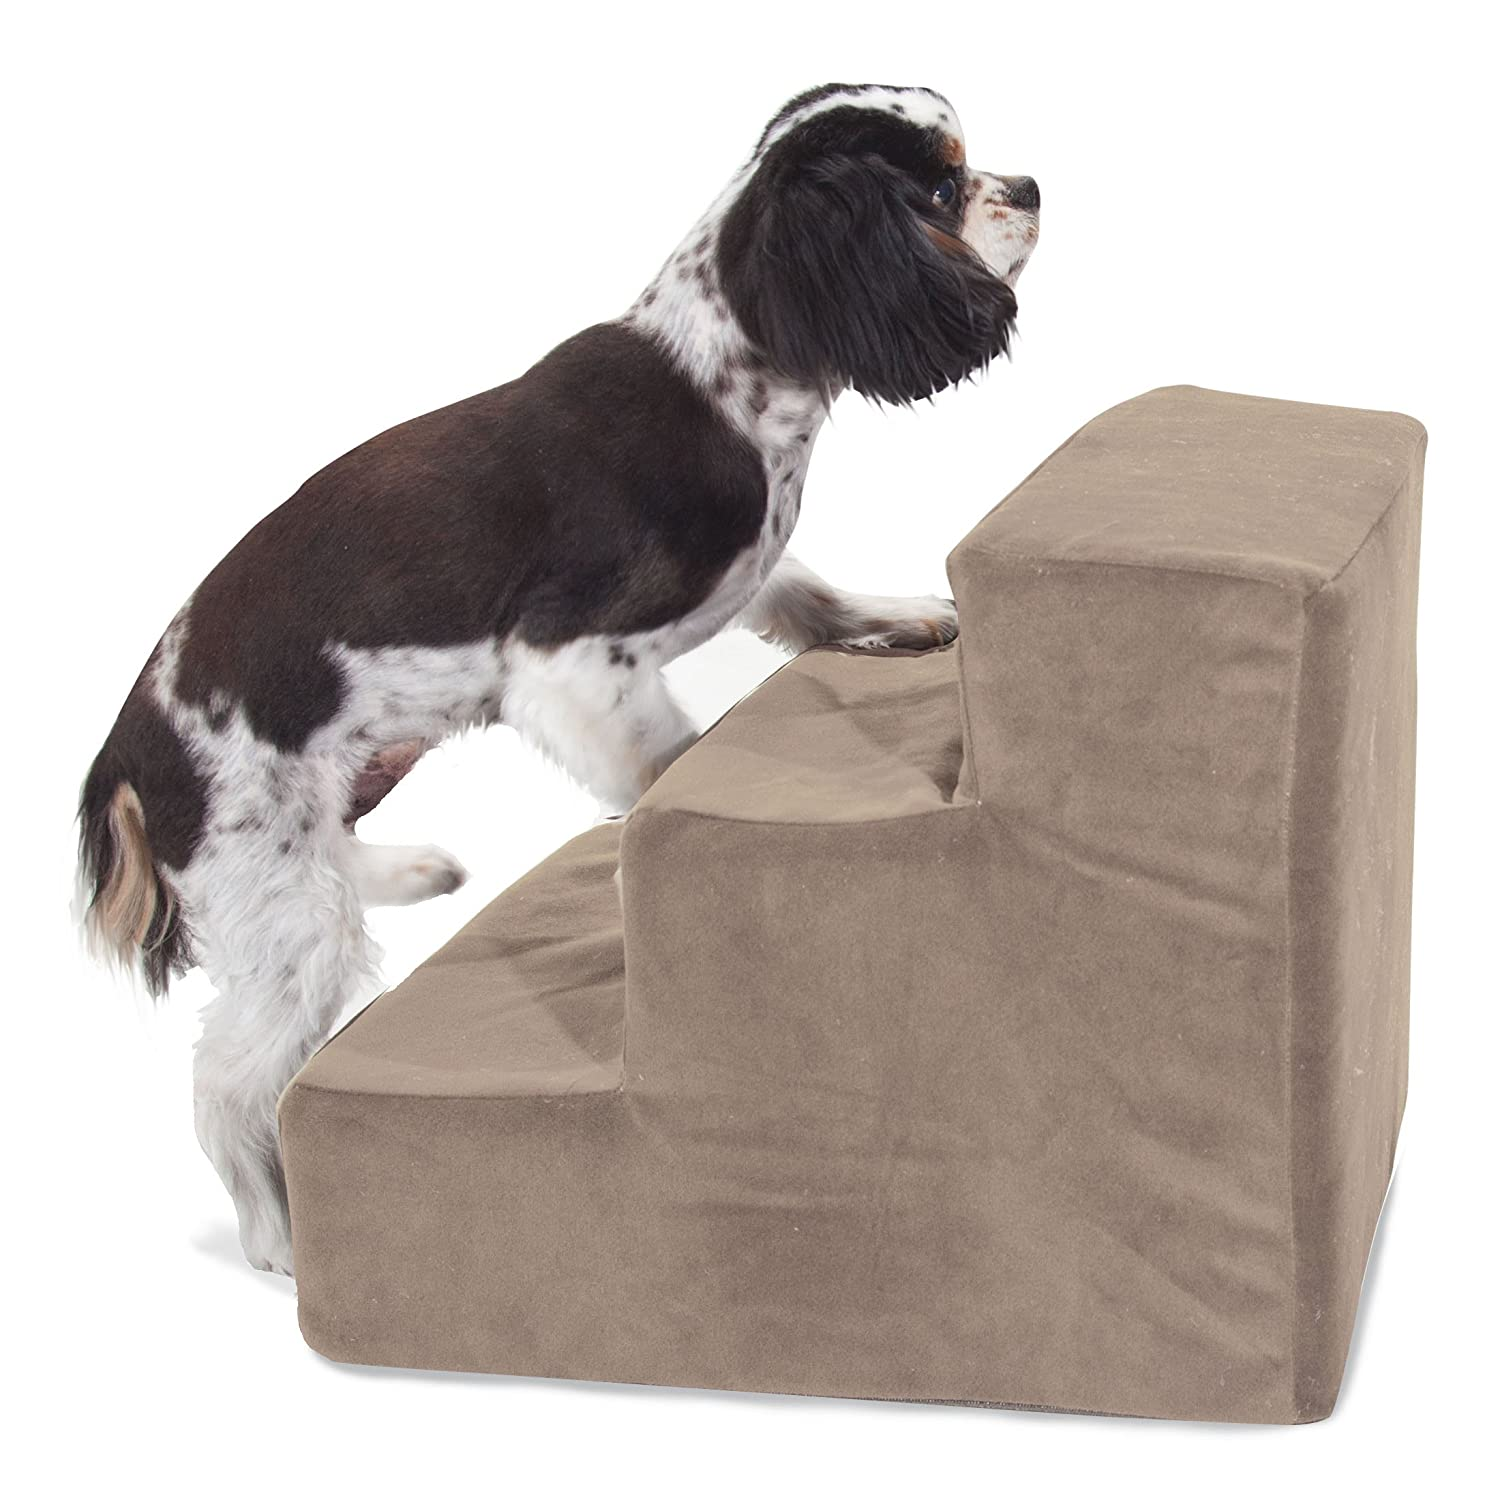 3 Step Stone Tan Suede Pet Stairs By Majestic Pet Products in neutral color